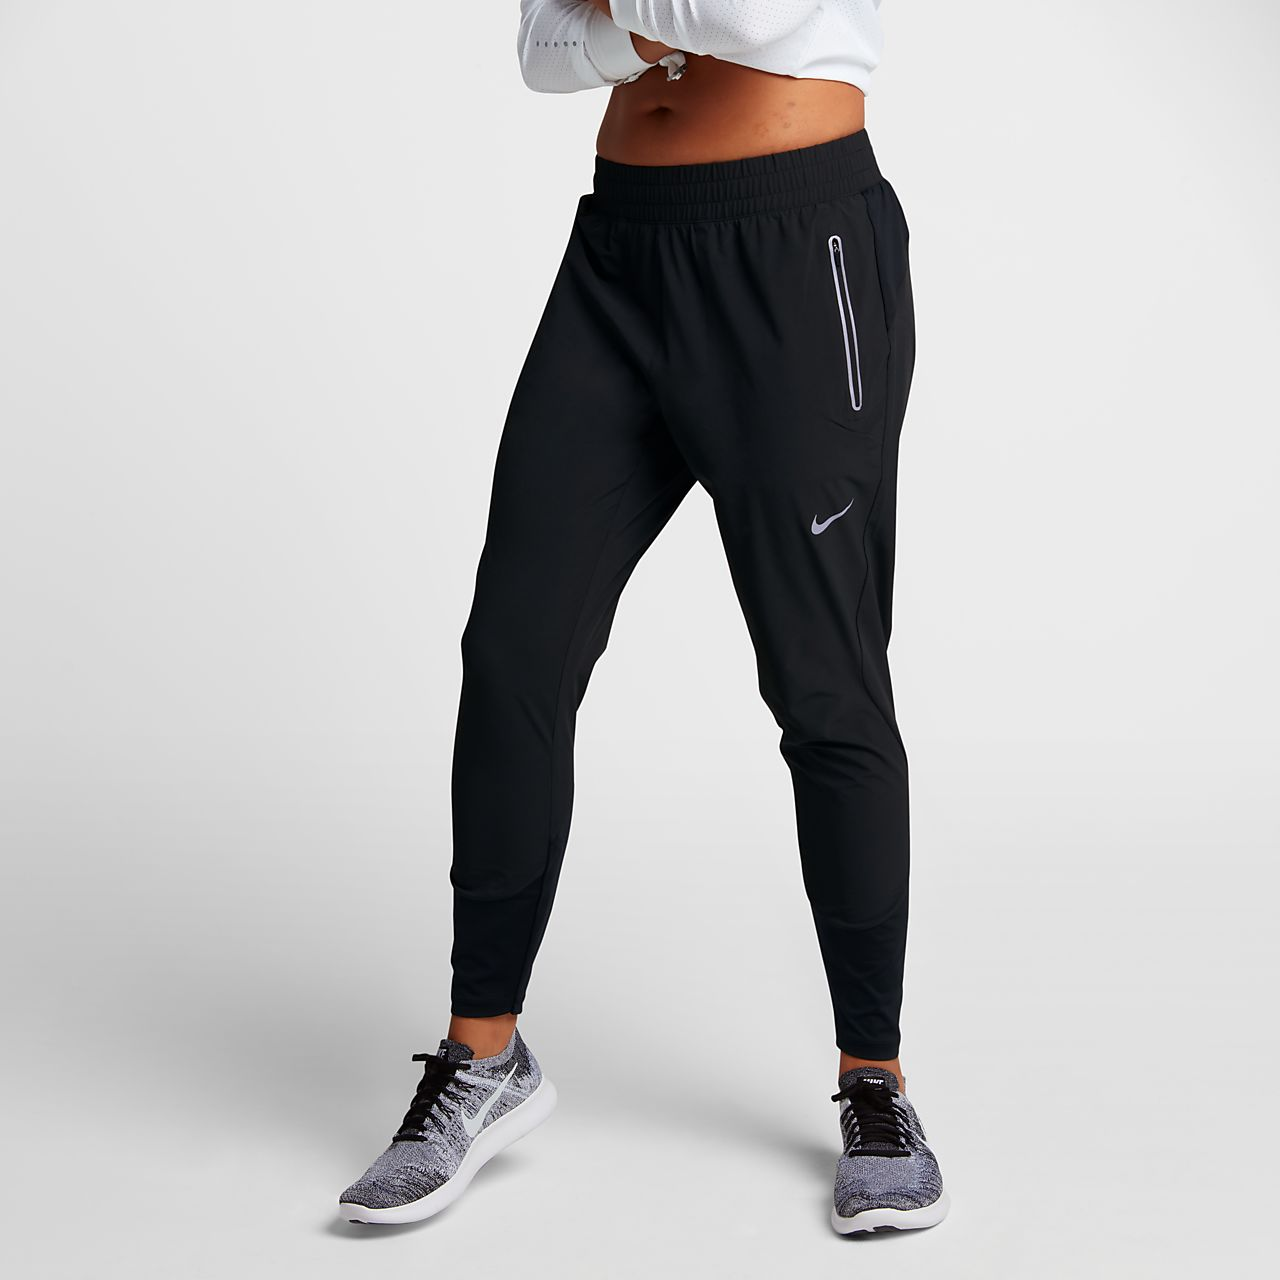 Pantalon de running Nike Swift 68 dd754bcc0f2